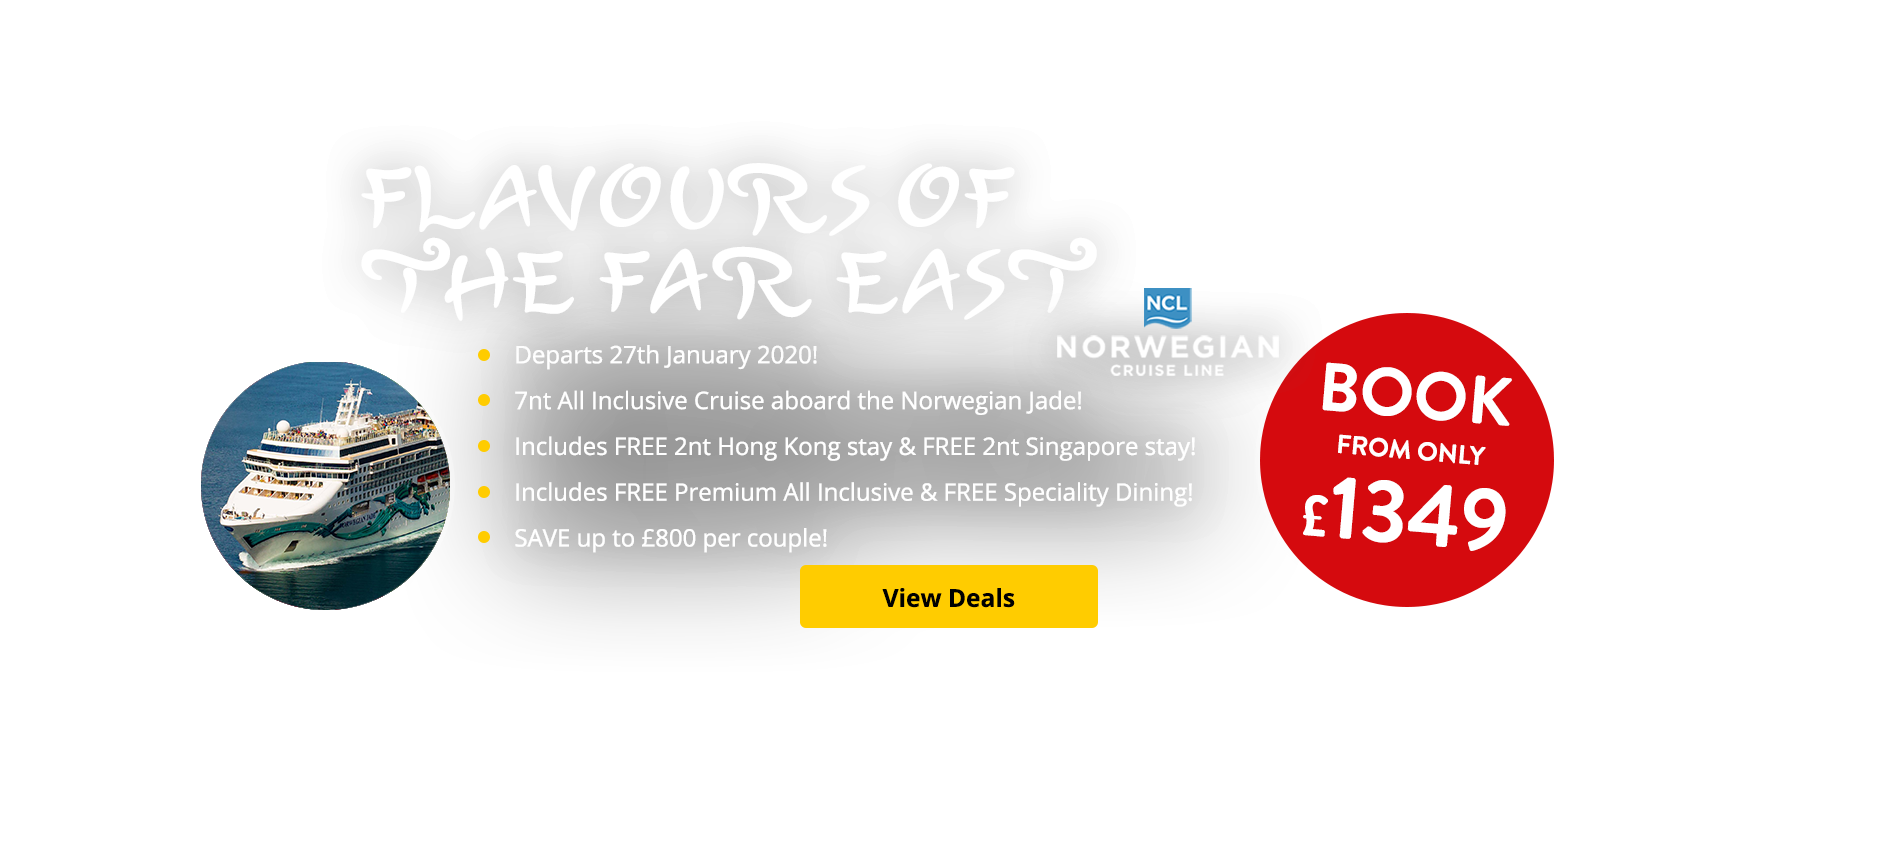 Departs 27th January 2020! 7nt All Inclusive Cruise aboard the Norwegian Jade! Includes FREE 2nt Singapore stay & FREE 2nt Hong Kong stay! Includes FREE Premium All Inclusive & FREE Speciality Dining! SAVE up to £800 per couple!